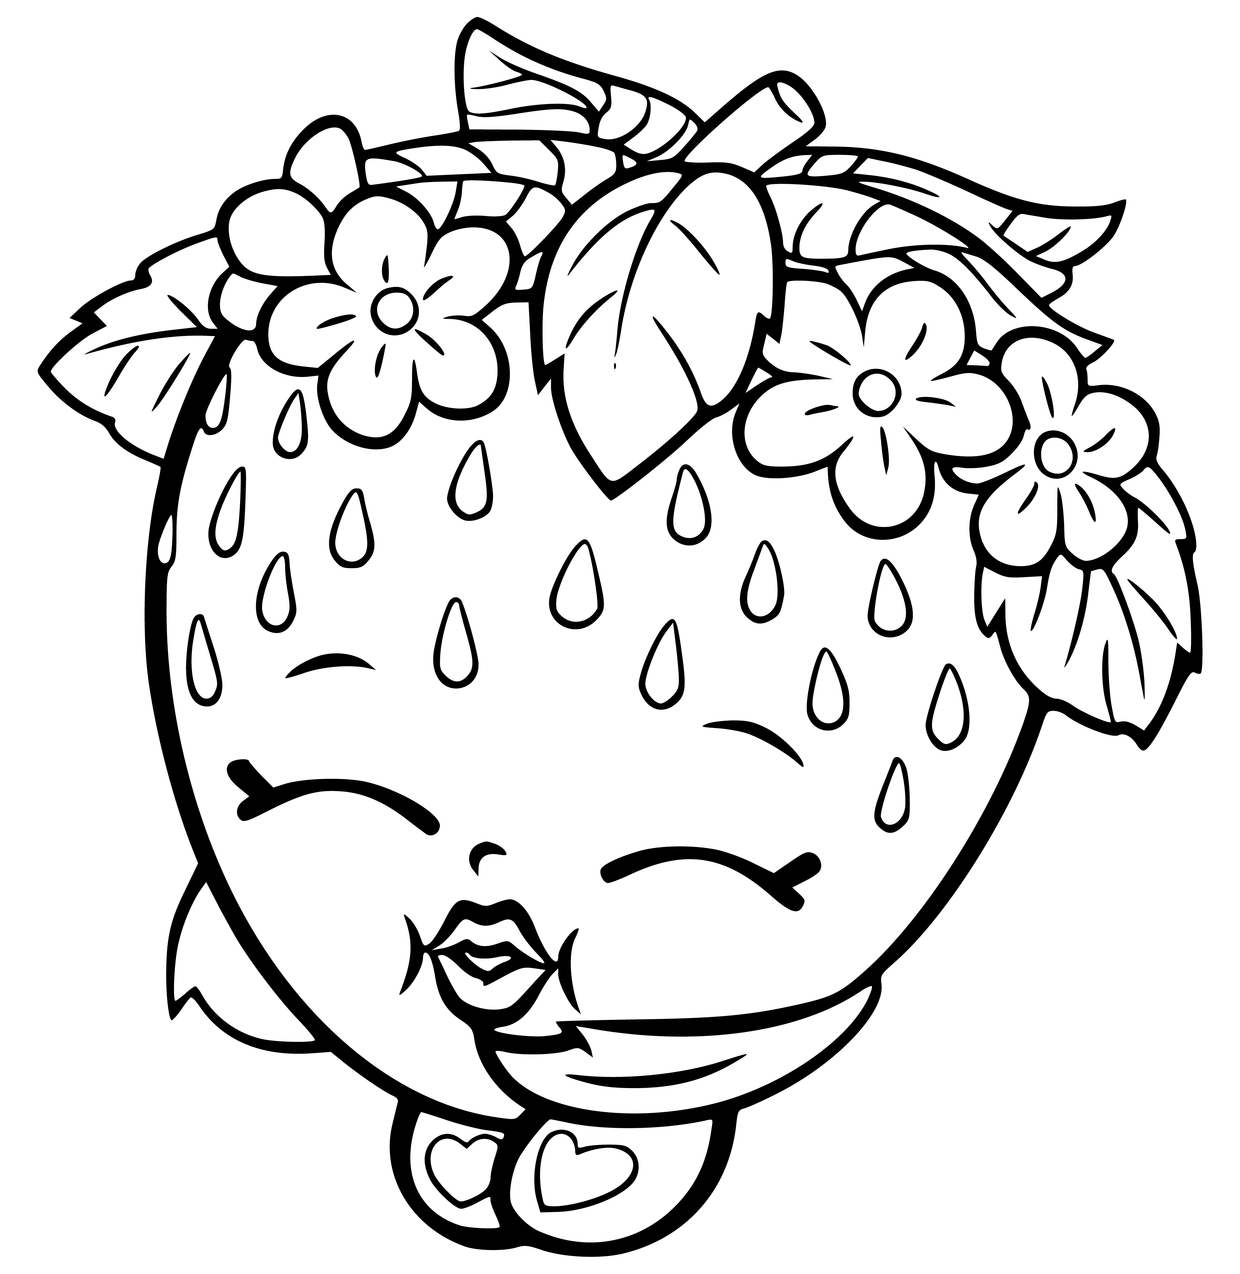 coloring strawberry free coloring pages printable strawberry coloring pages coloring strawberry